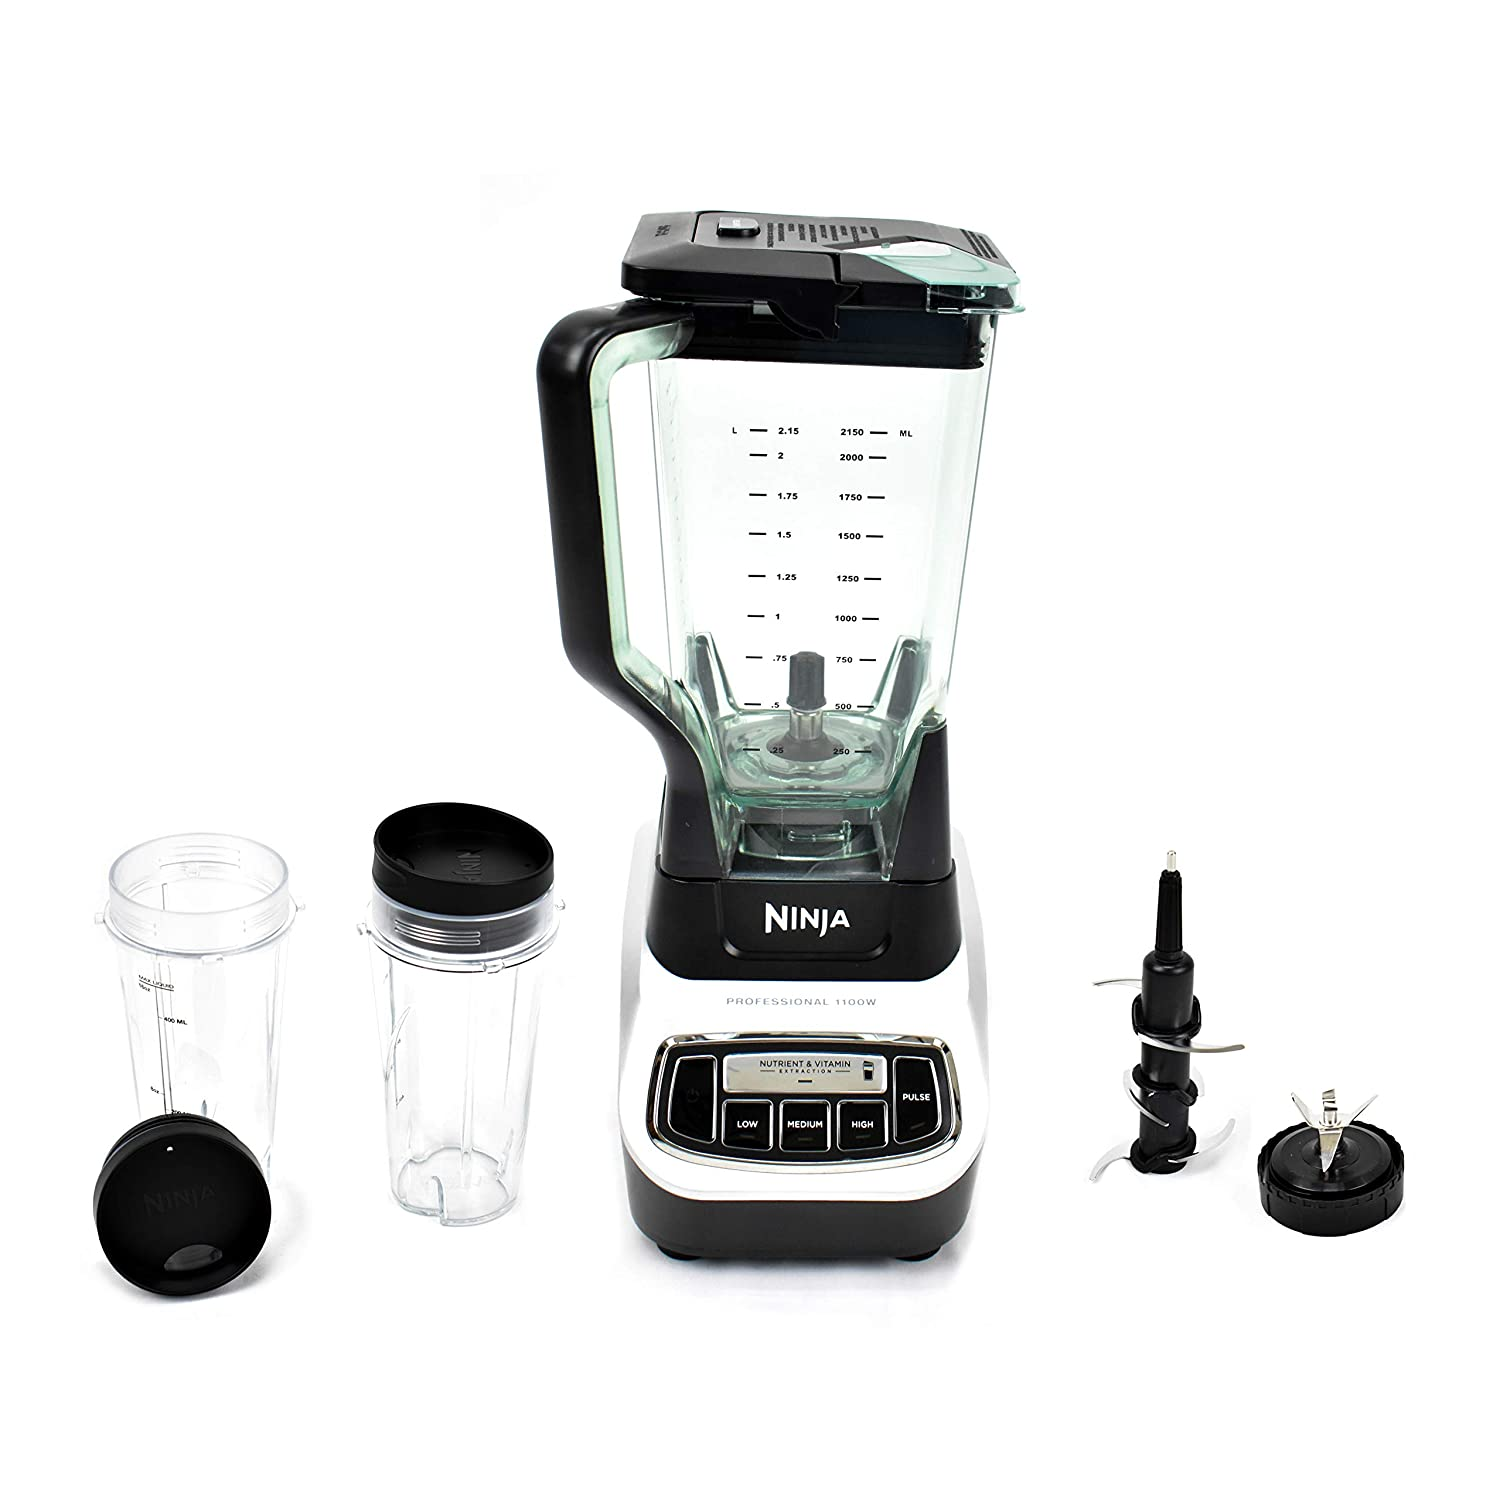 Ninja Professional (BL621) Vitamin Extraction Blender 1100-Watt Motor 72 oz. Total Crushing Pitcher (2) 16 oz. Nutri Ninja Cups with Lids for Smoothies and Juices (Renewed)